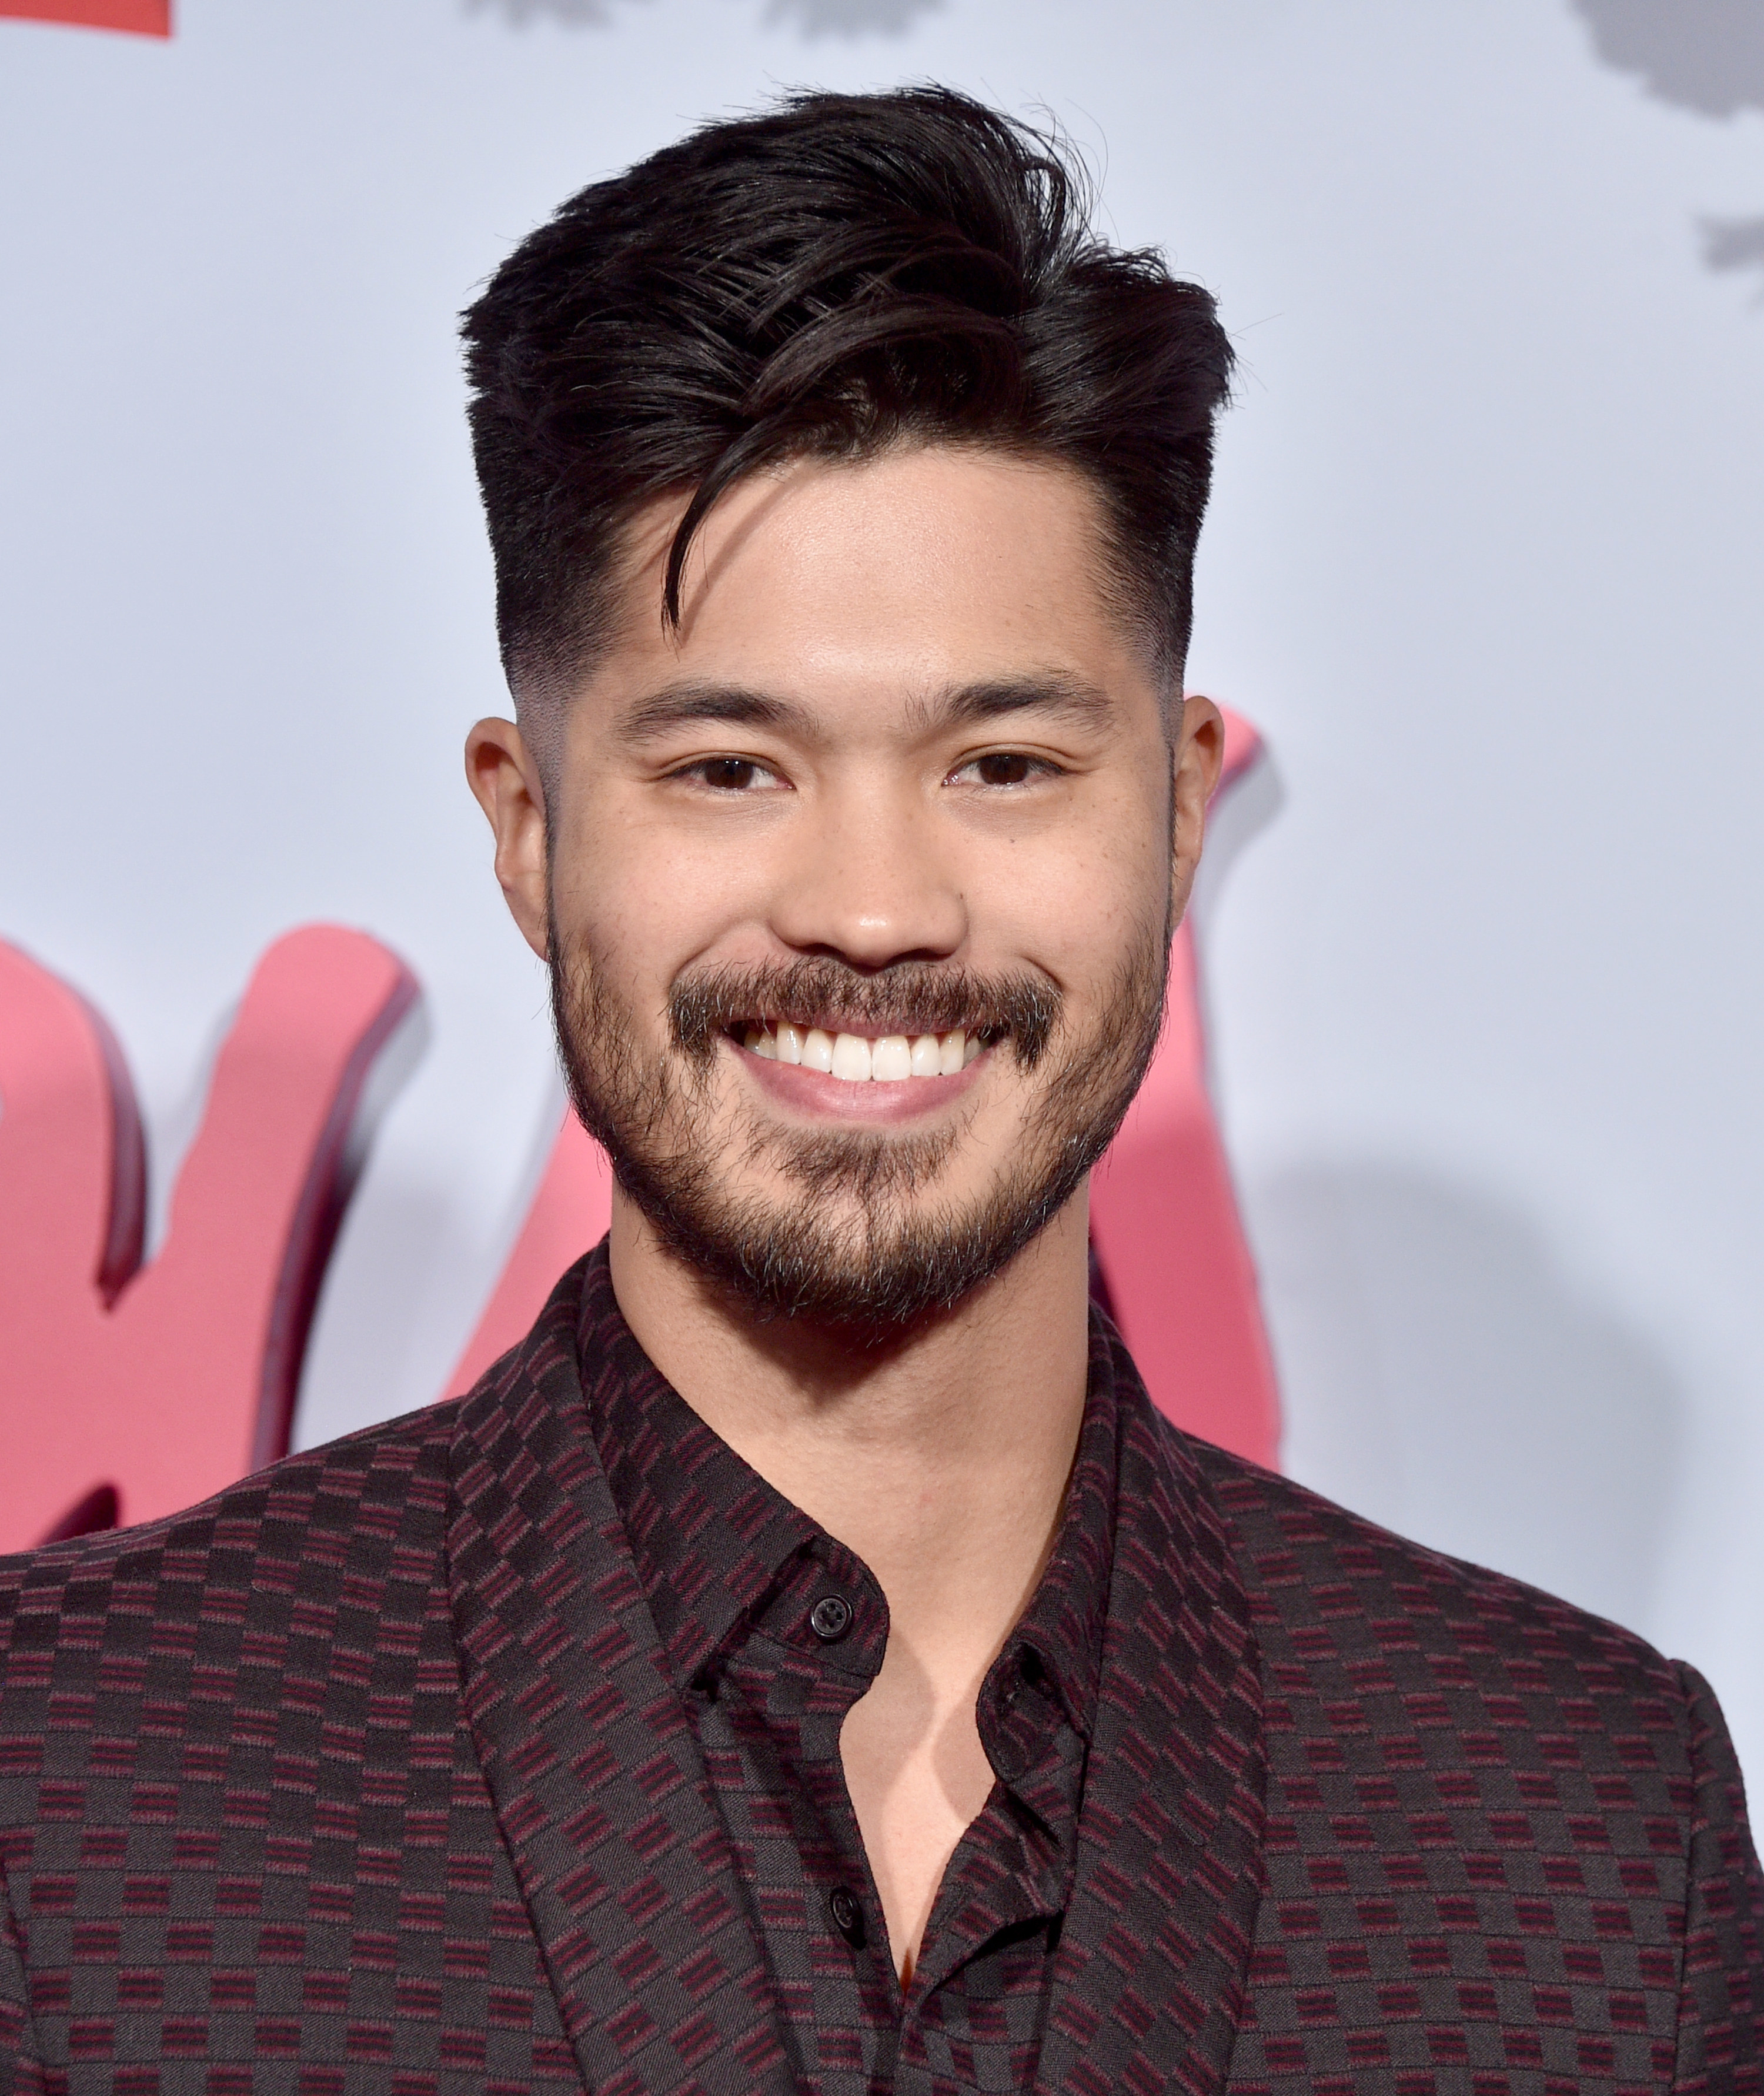 Ross Butler smiles in a matching suit and shirt